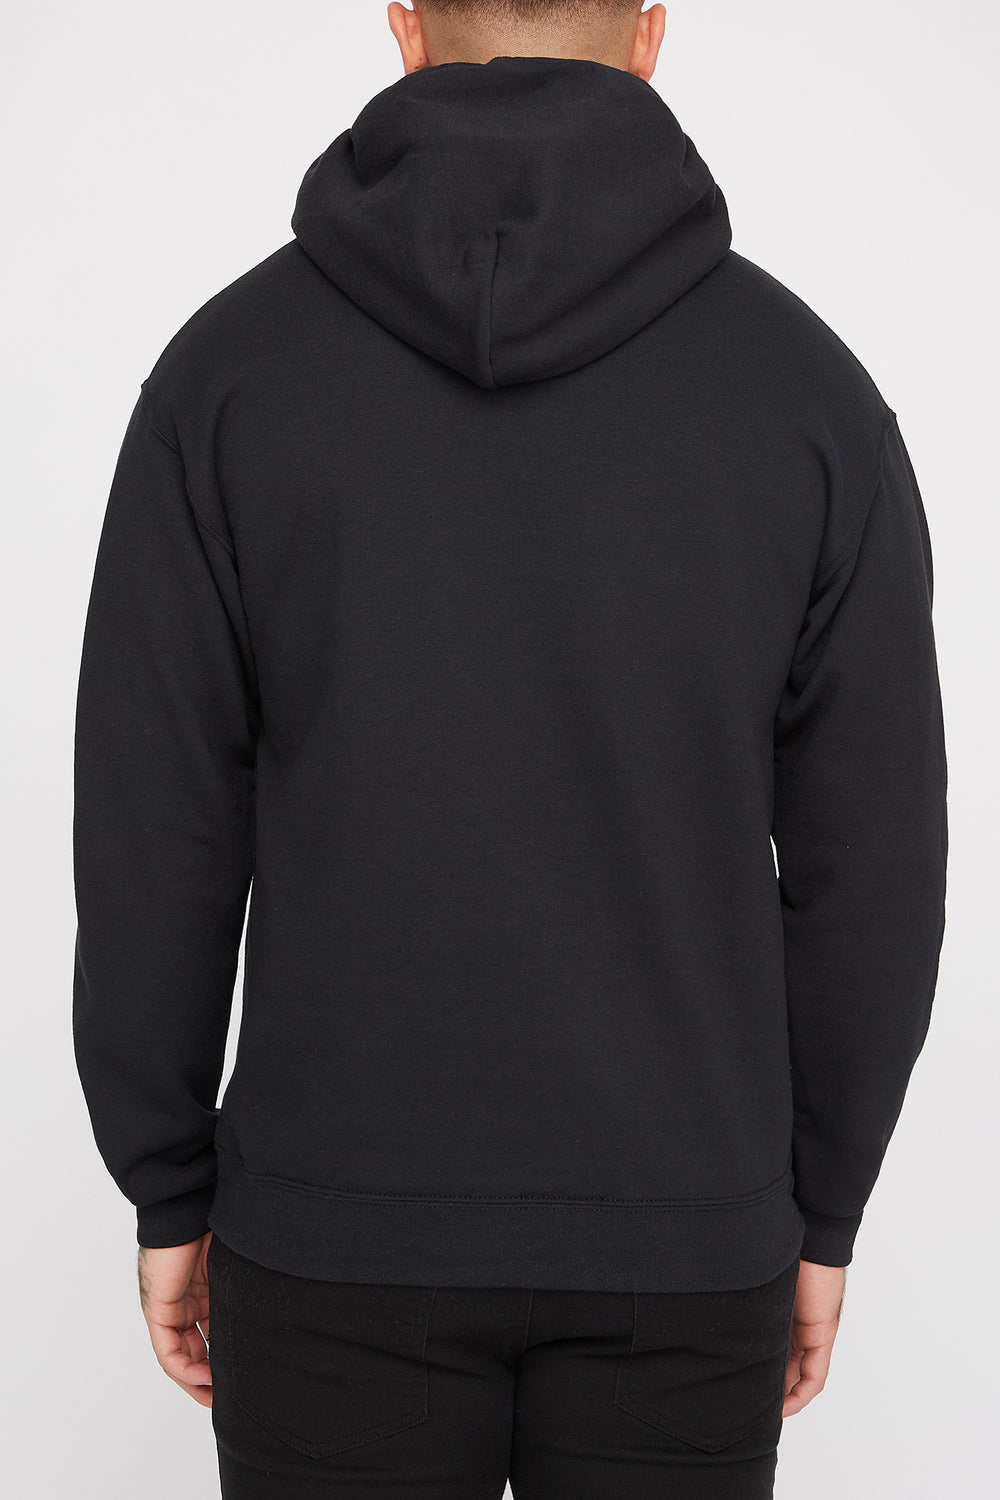 Thrasher Mens Black Hoodie Black